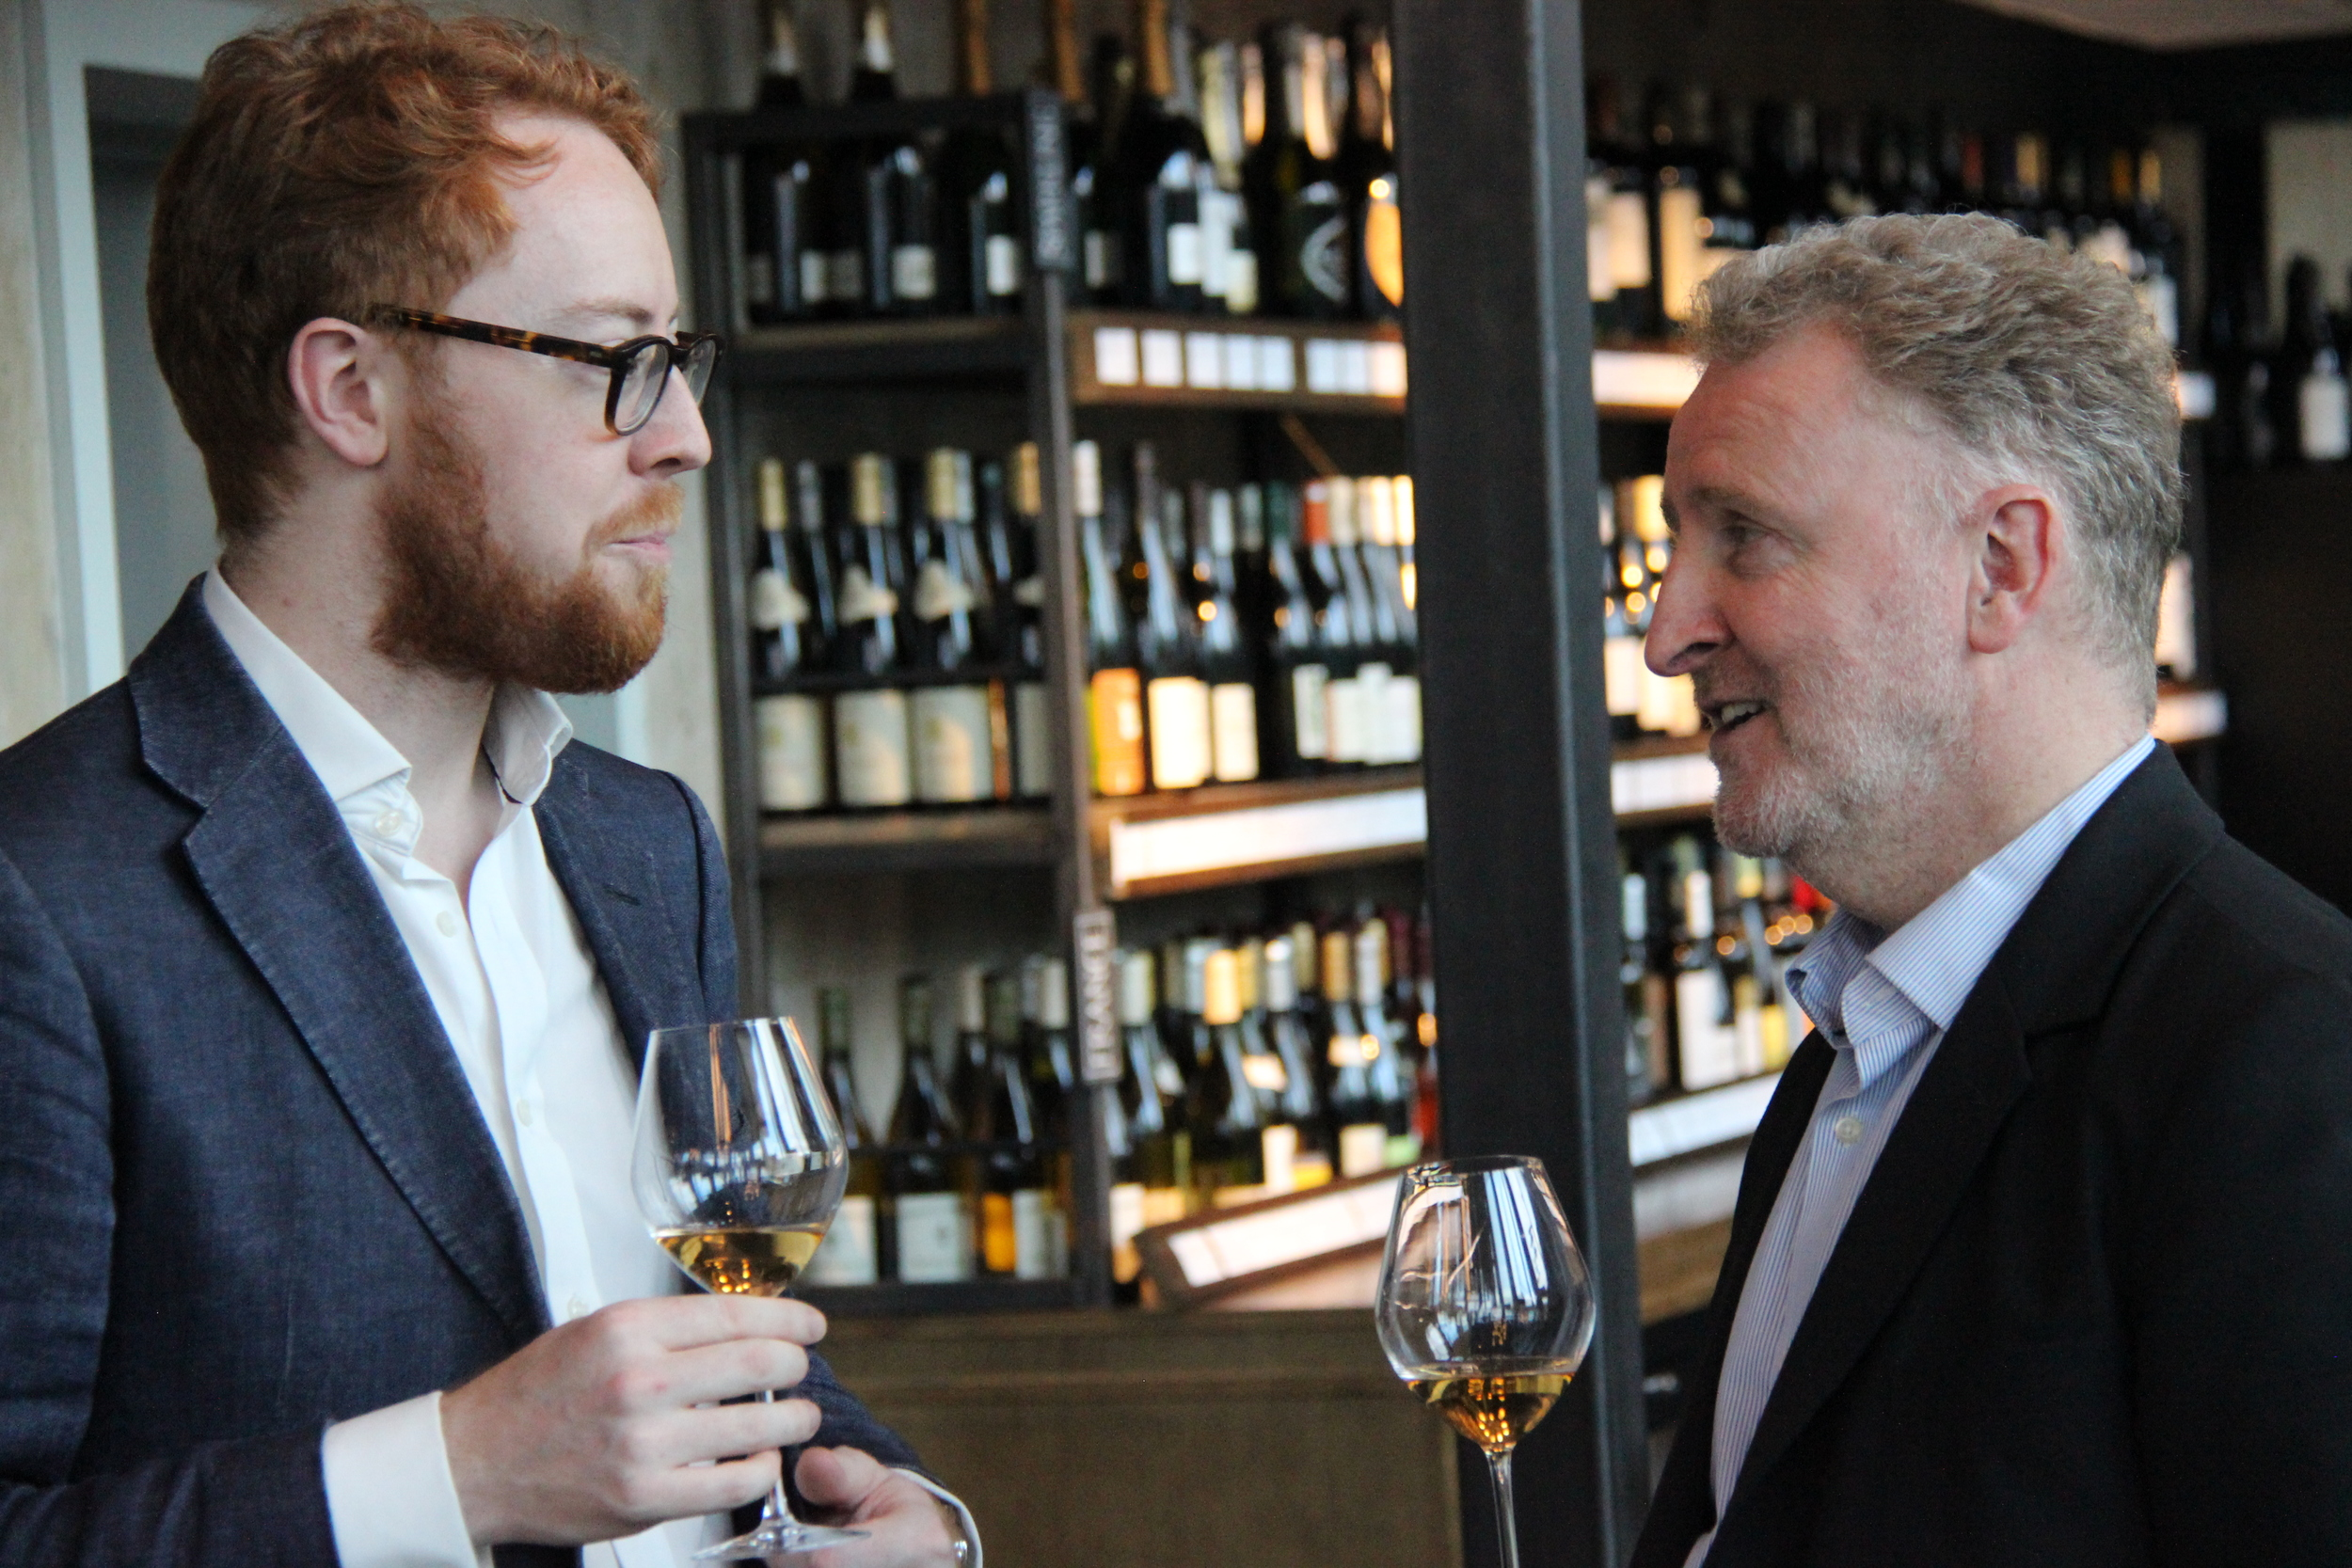 Alex Hunt's resplendent beard brought along its owner, seen here talking to fellow philosopher Barry Smith